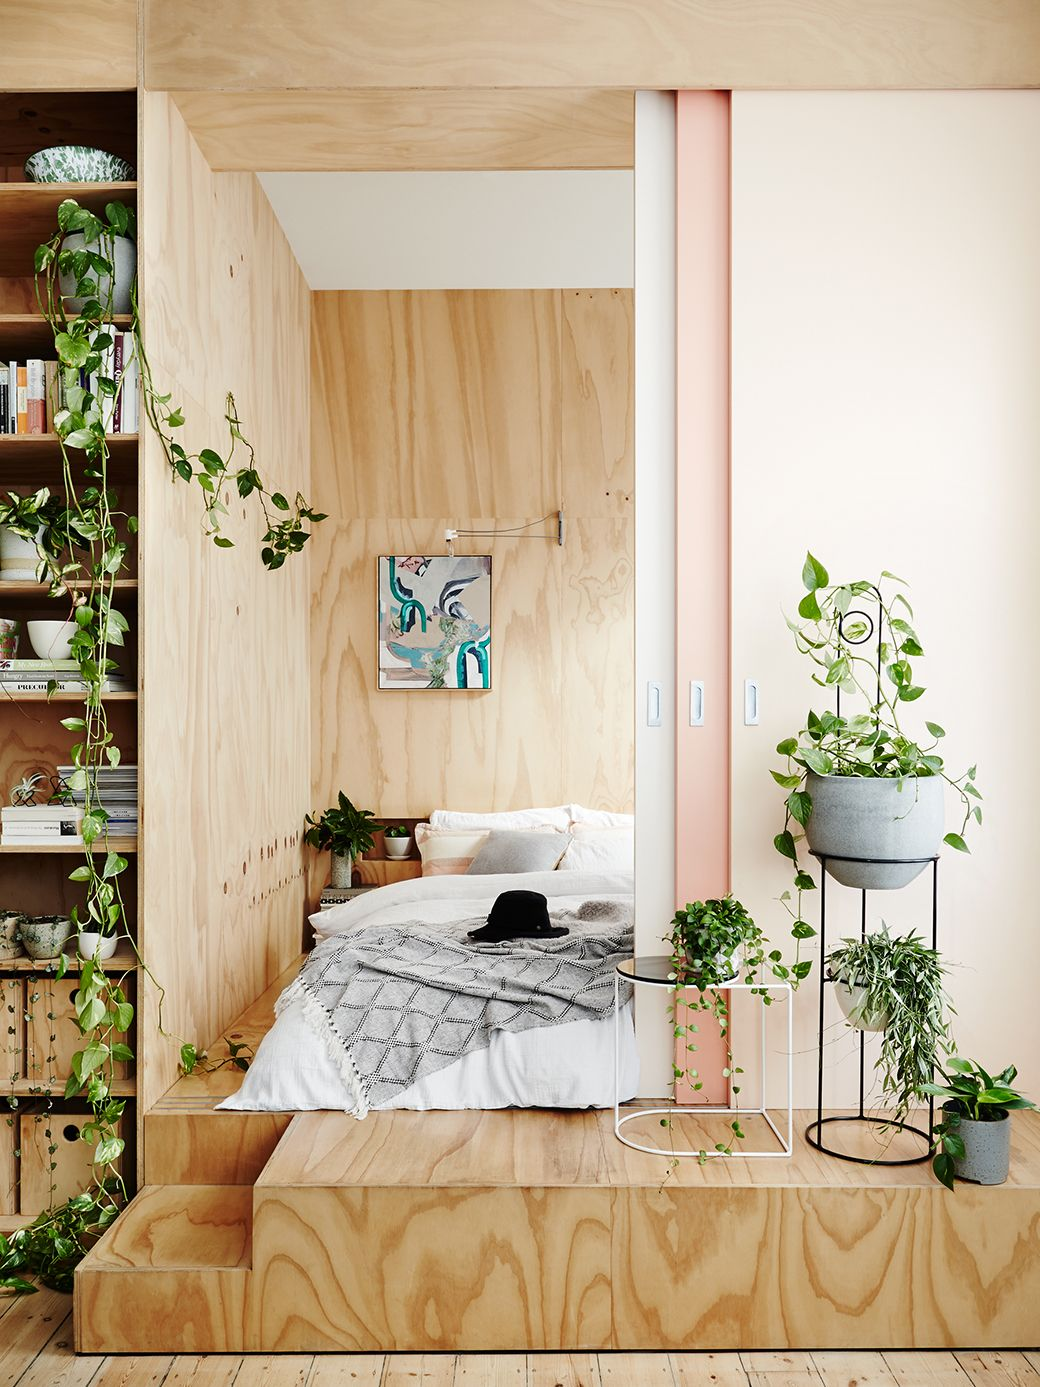 8 Stylish Ways To Decorate + Live With Plants Woman